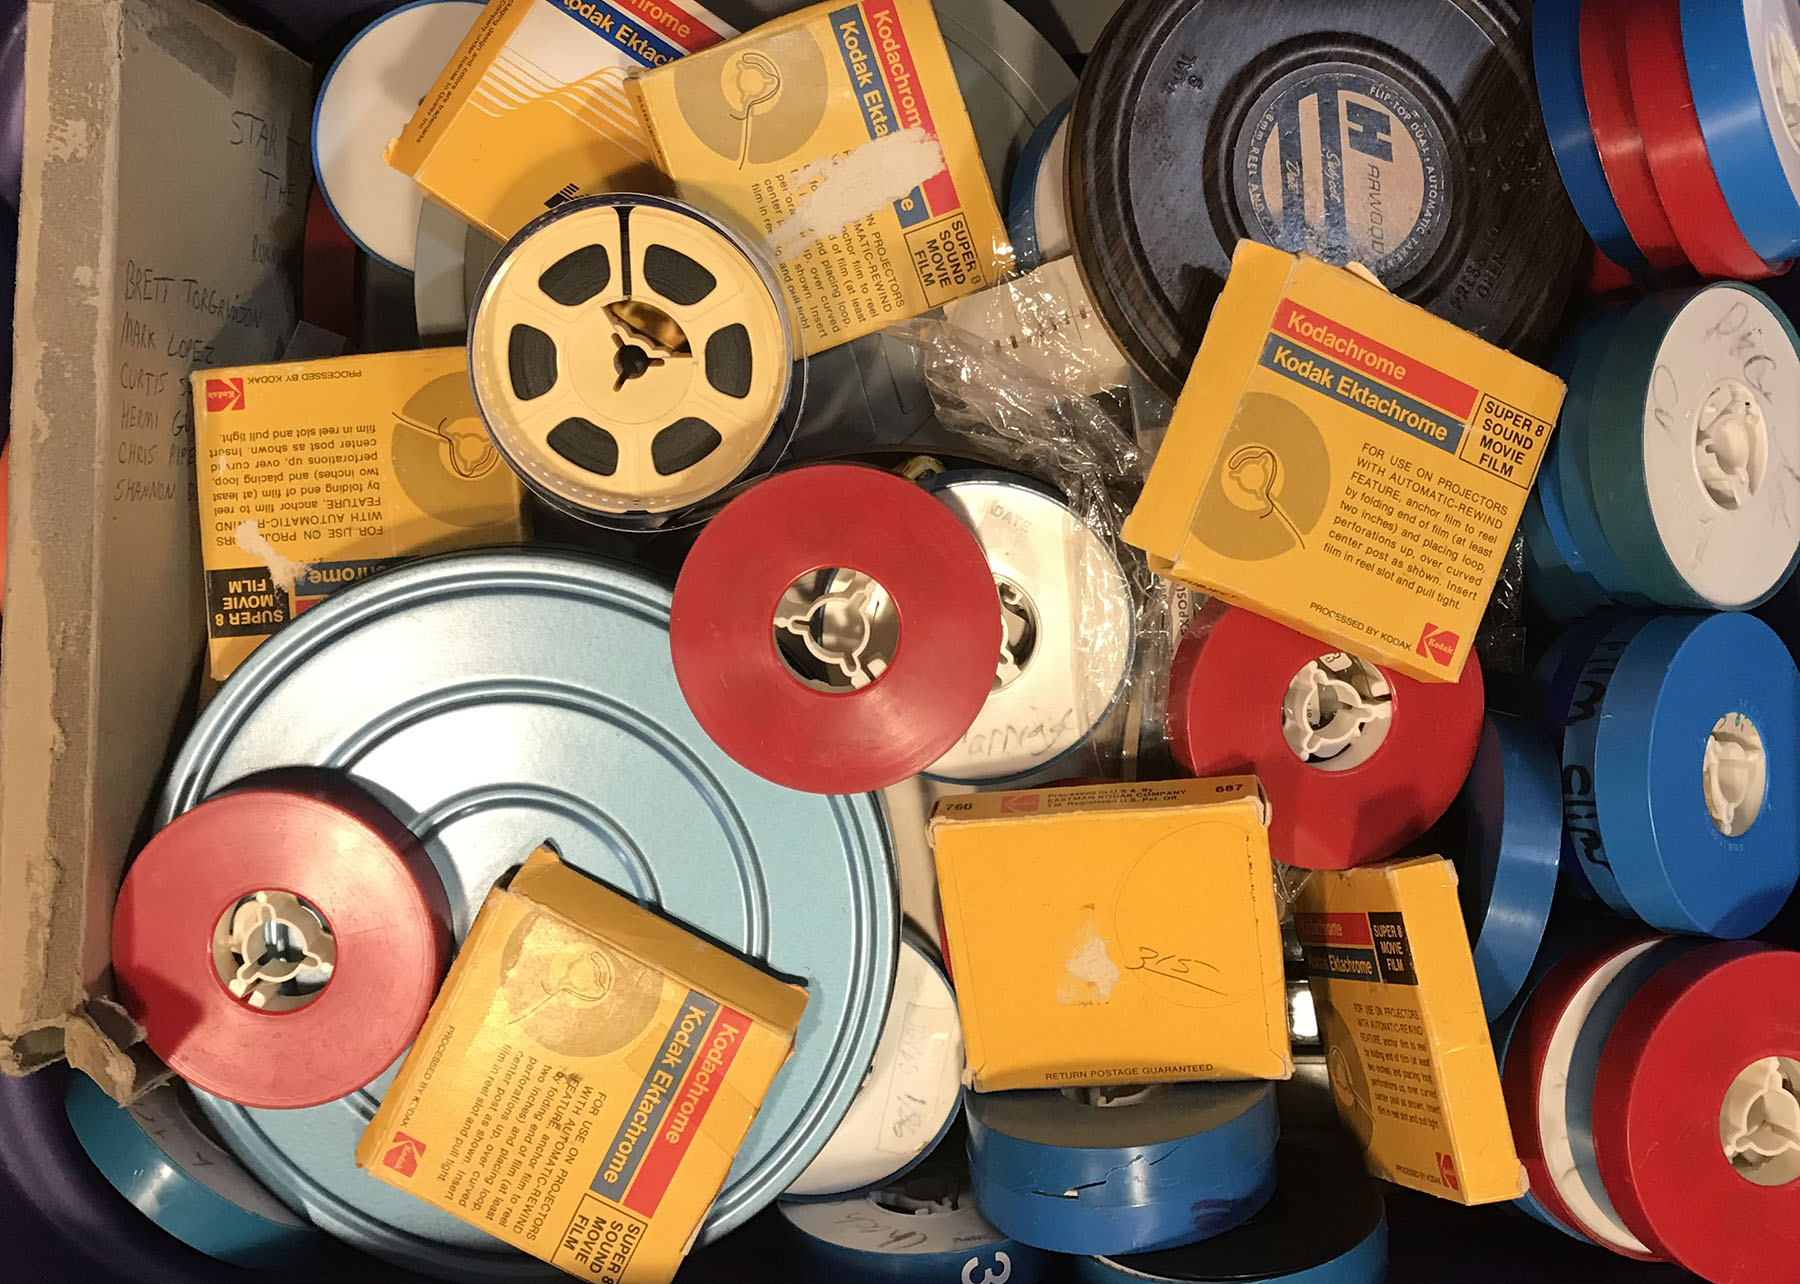 10 TIPS FOR PRESERVING FAMILY MOVIES